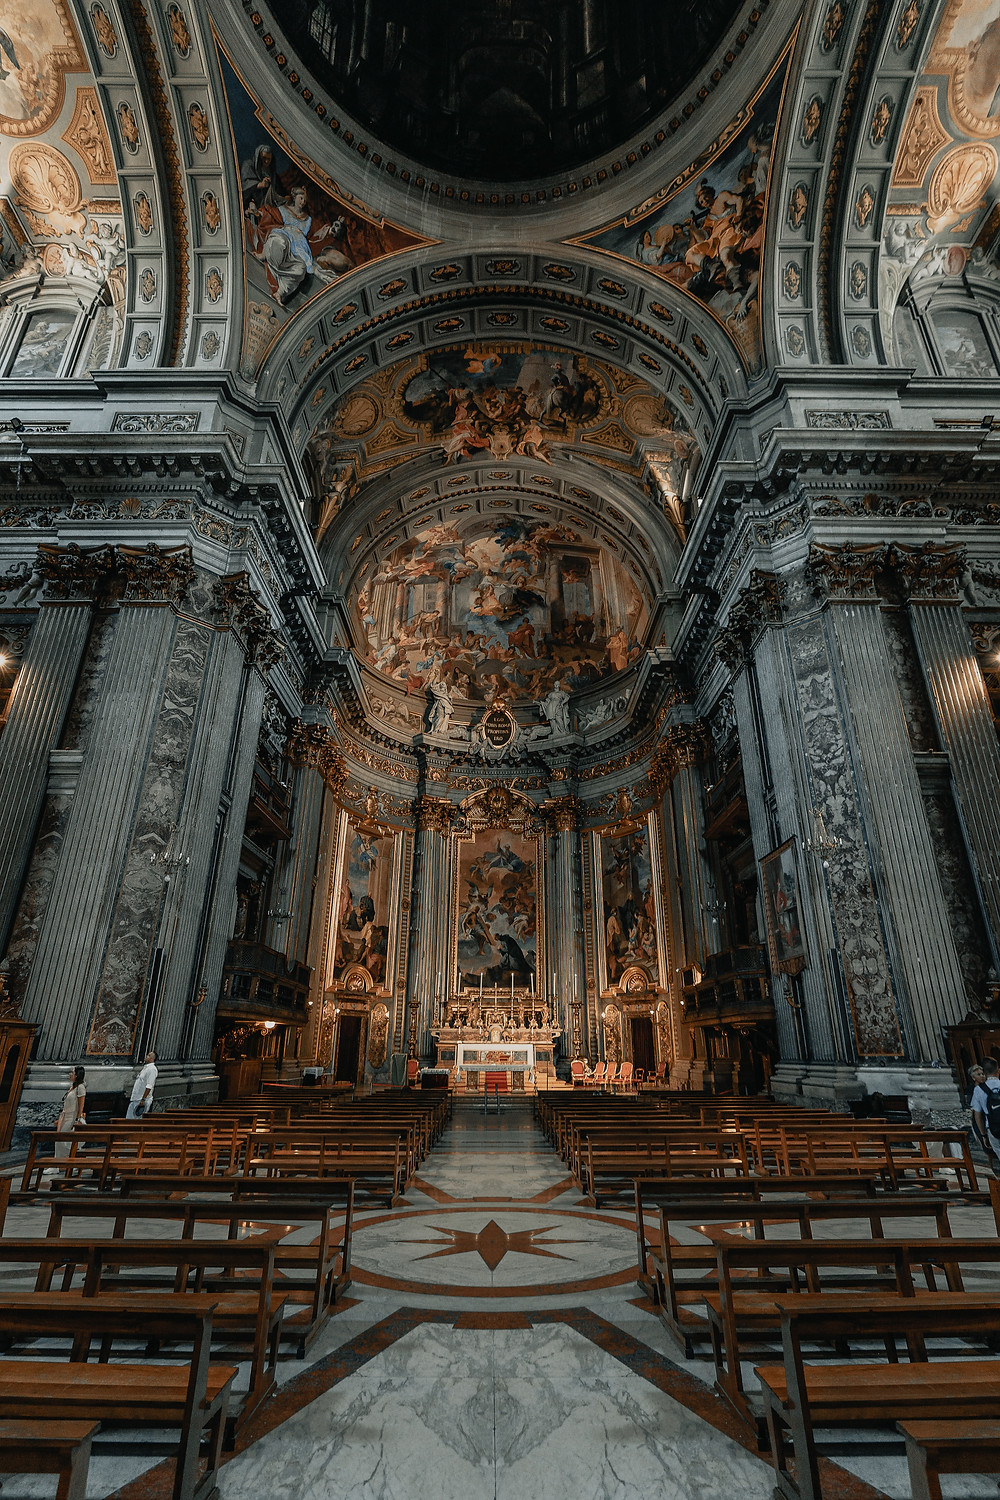 Image from the Vatican, Rome